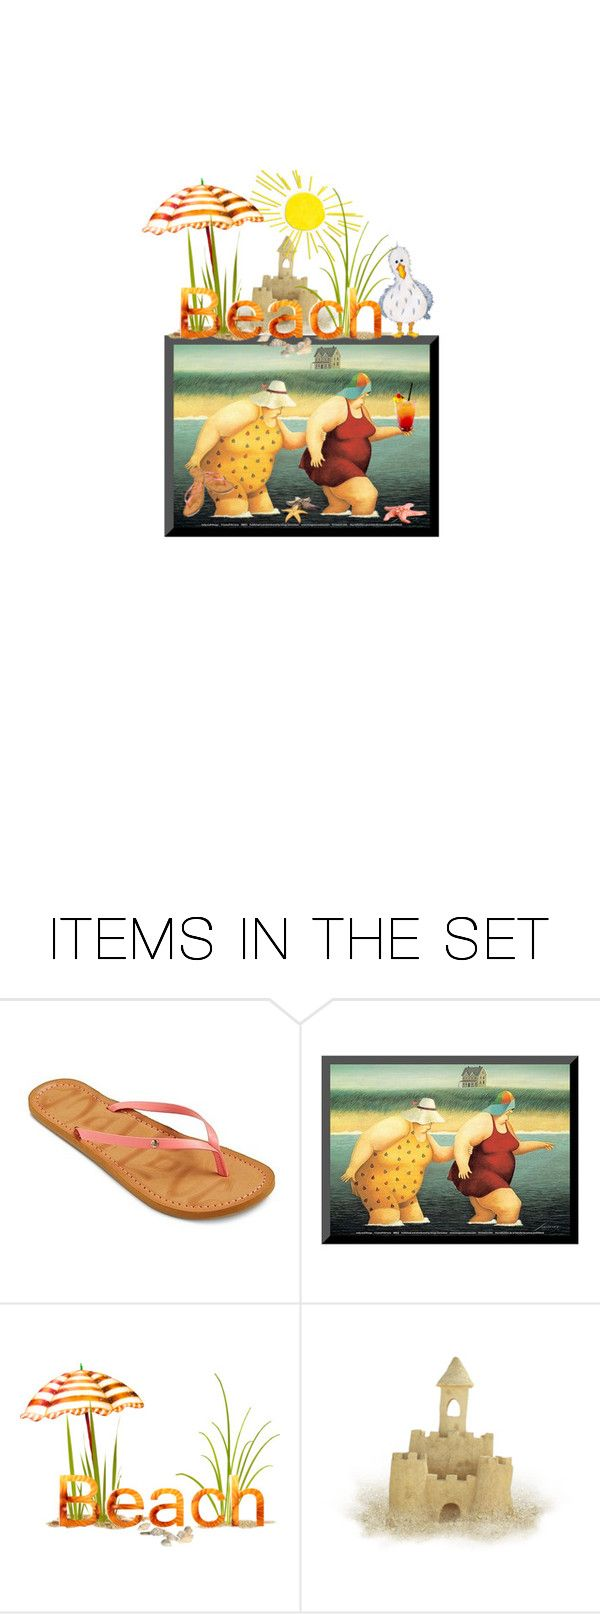 """""""Peach Beach Challenge Contest"""" by theonly-queenregina ❤ liked on Polyvore featuring art"""